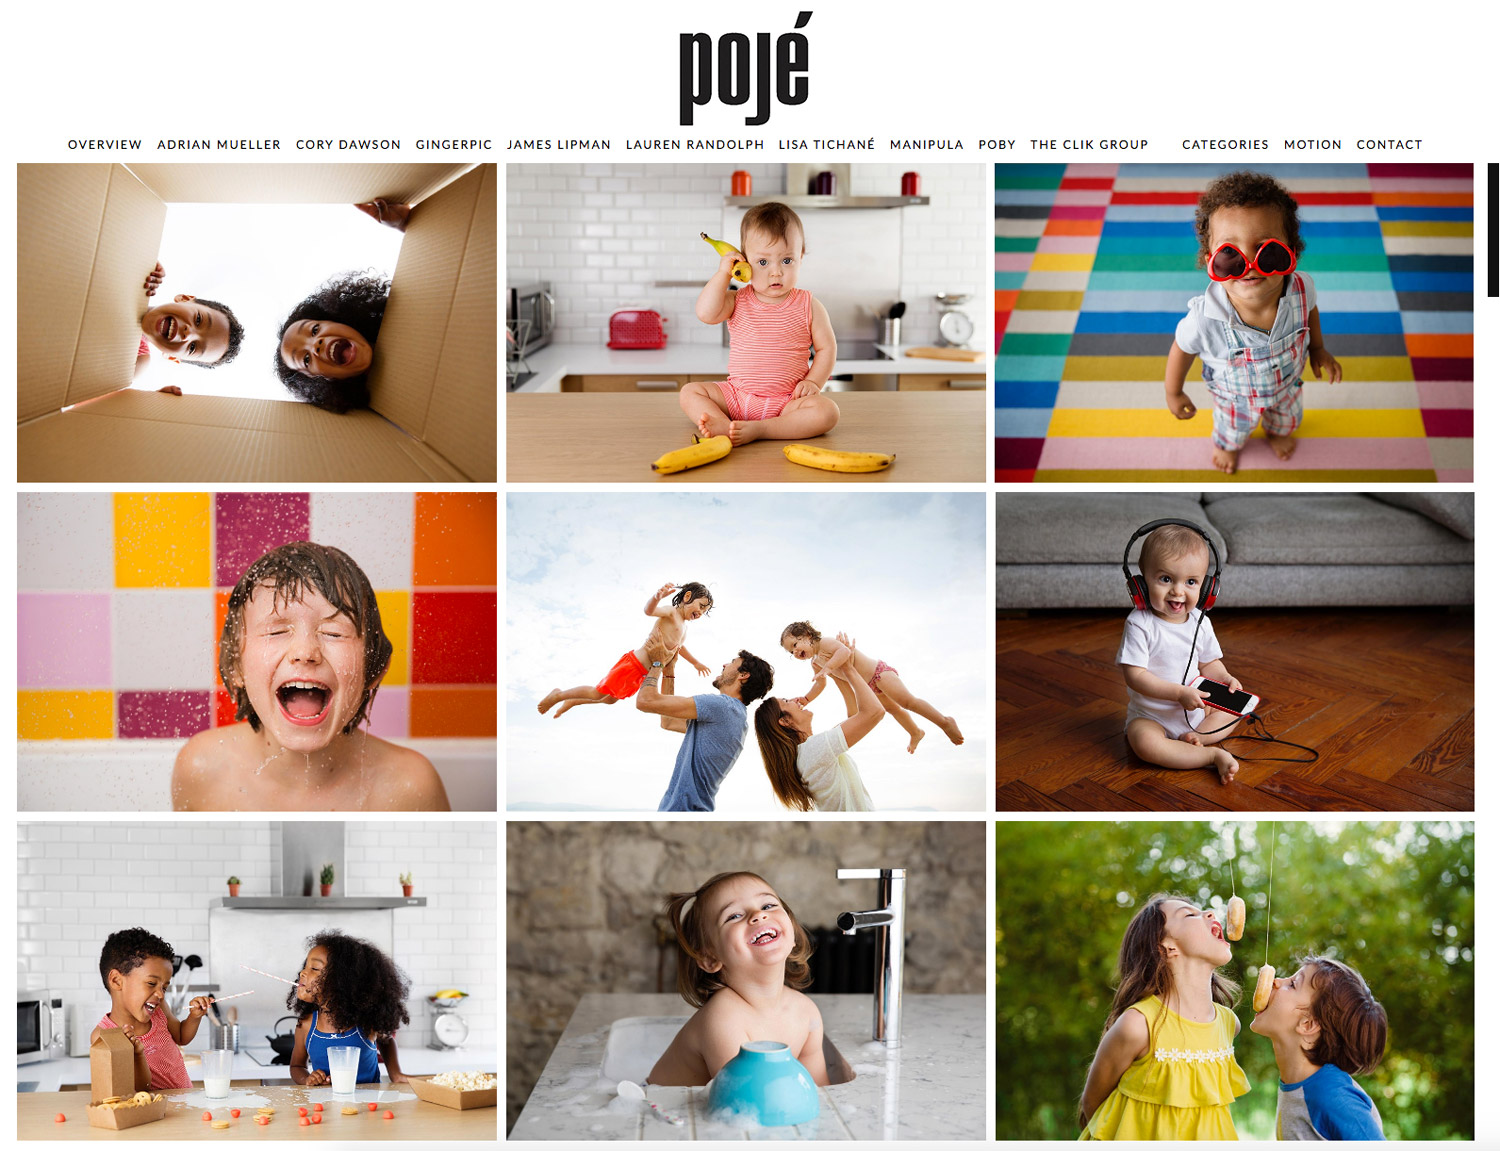 Lisa Tichané, commercial kids photographer, is represented by Elizabeth Pojé